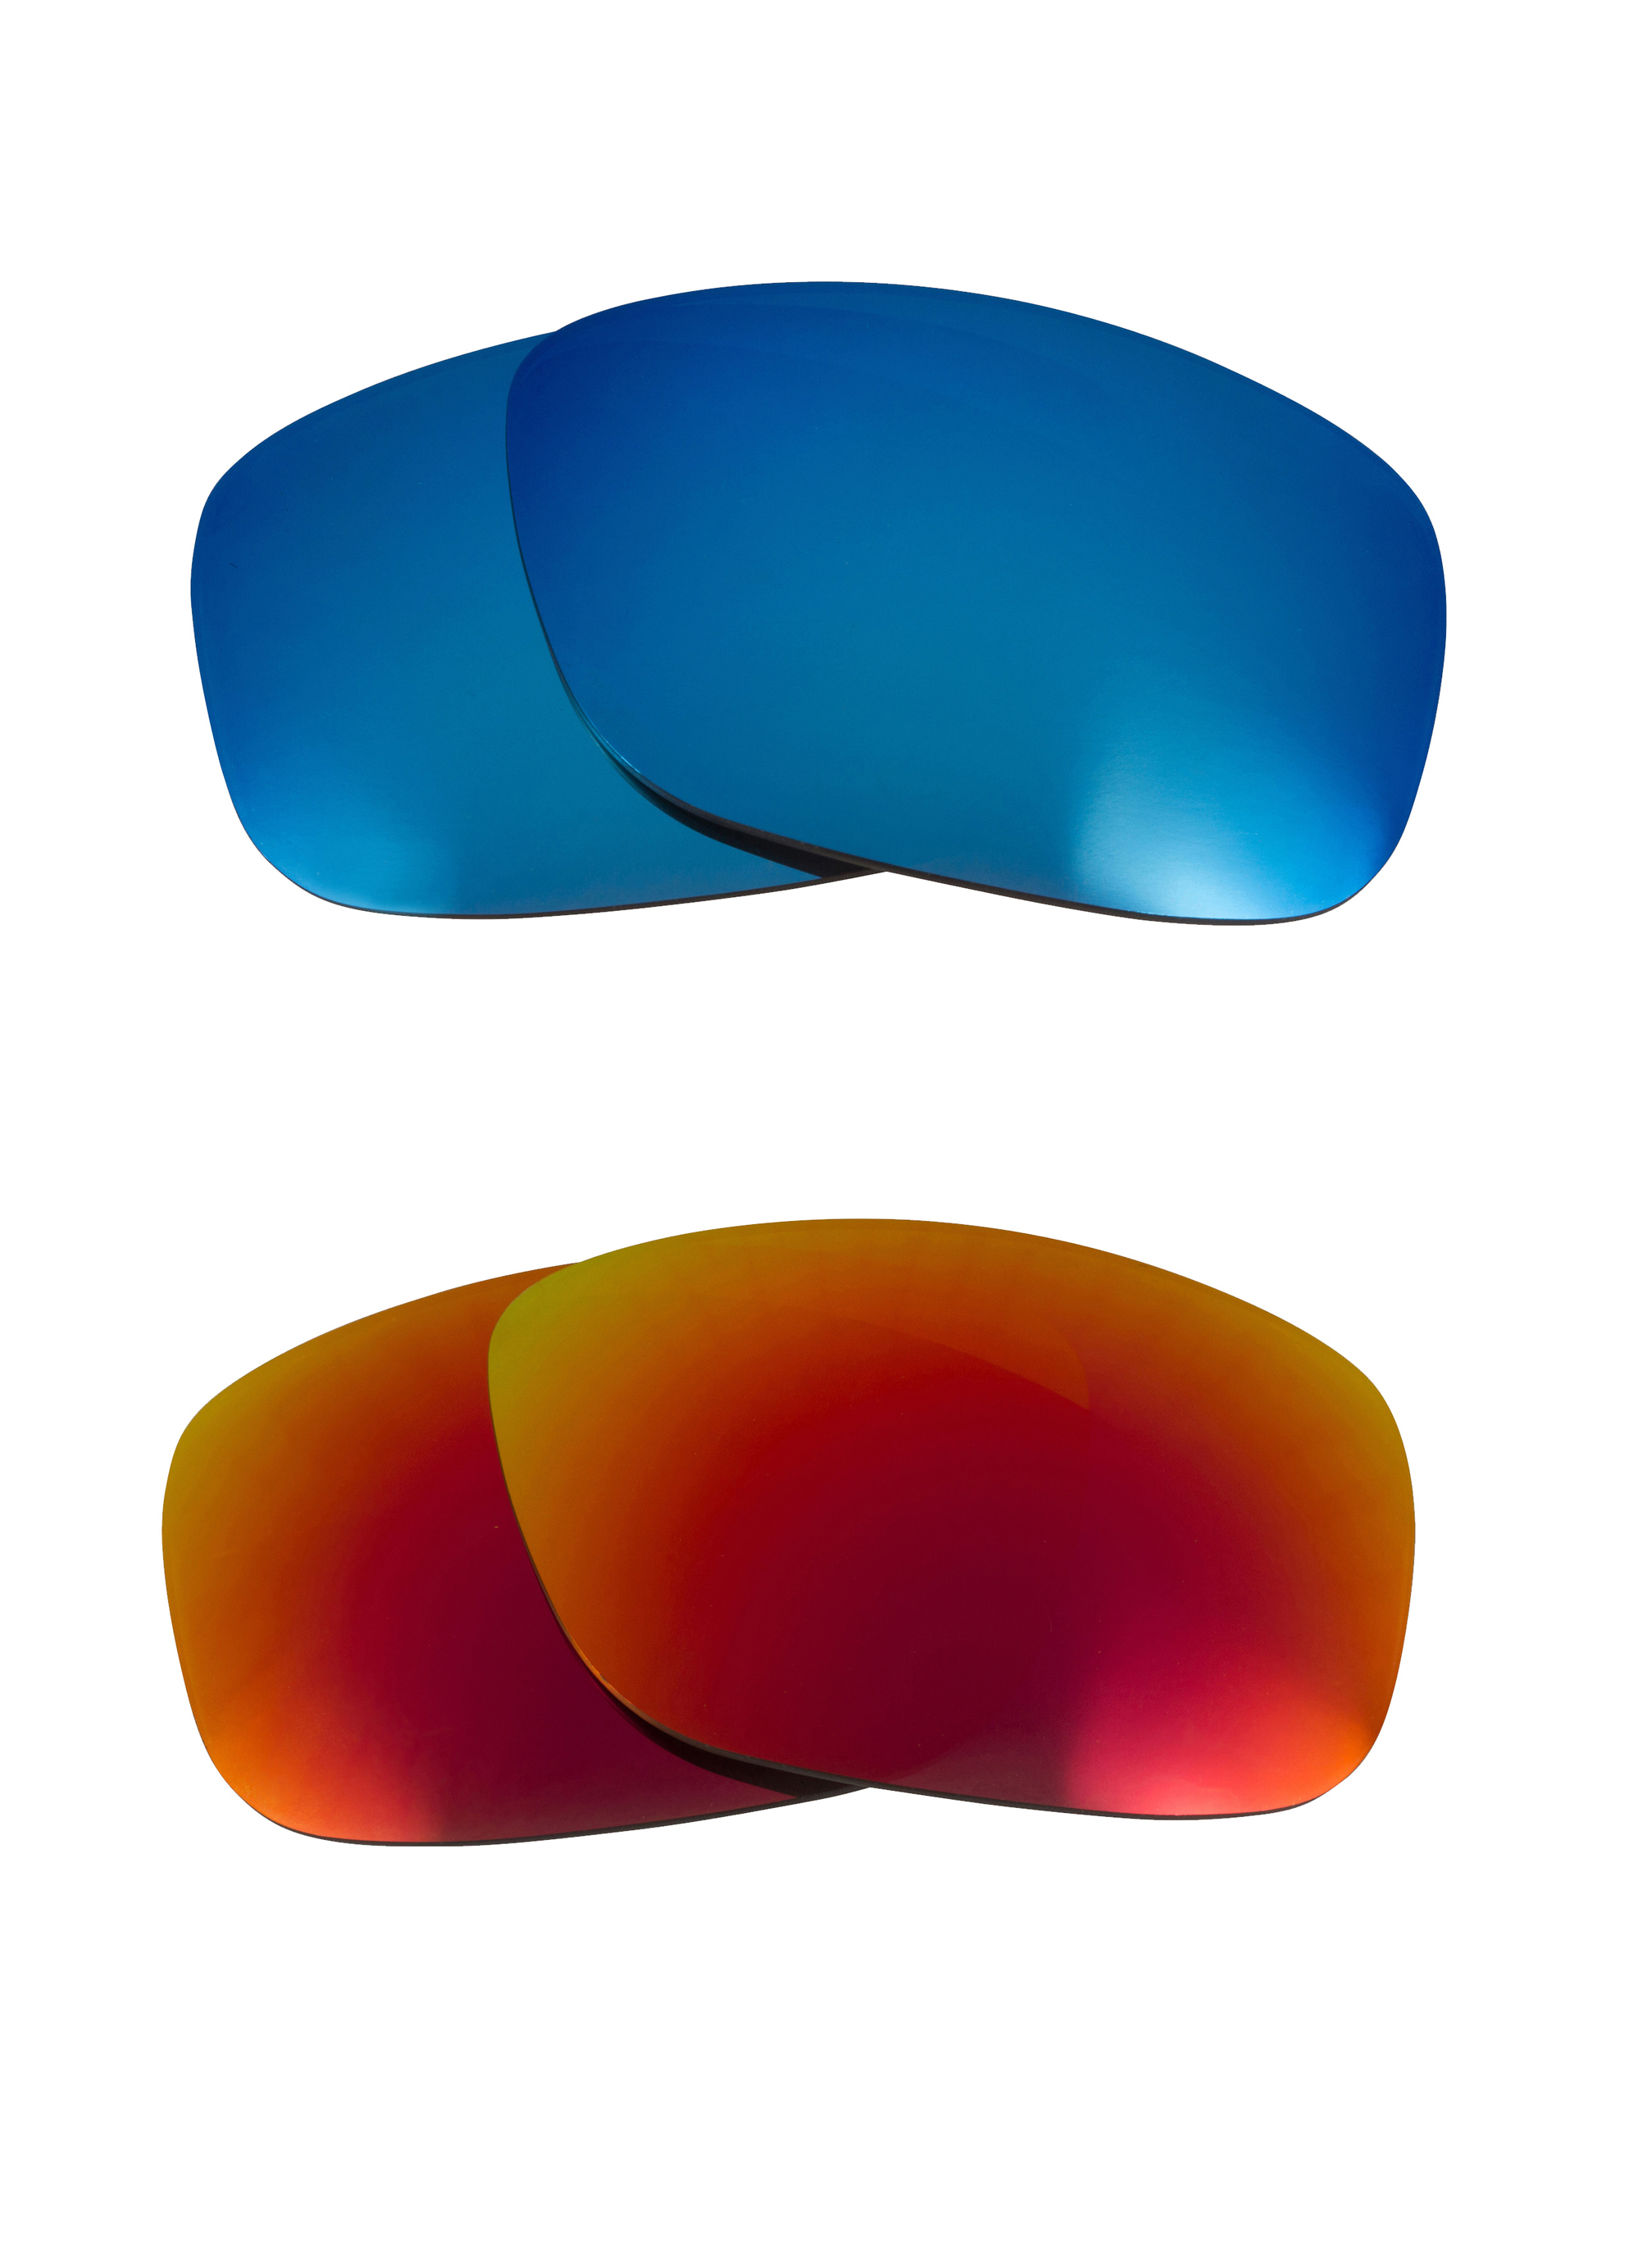 388ed53553 Details about Best SEEK Polarized Replacement Lenses for Oakley MOONLIGHTER  Red Blue Mirror